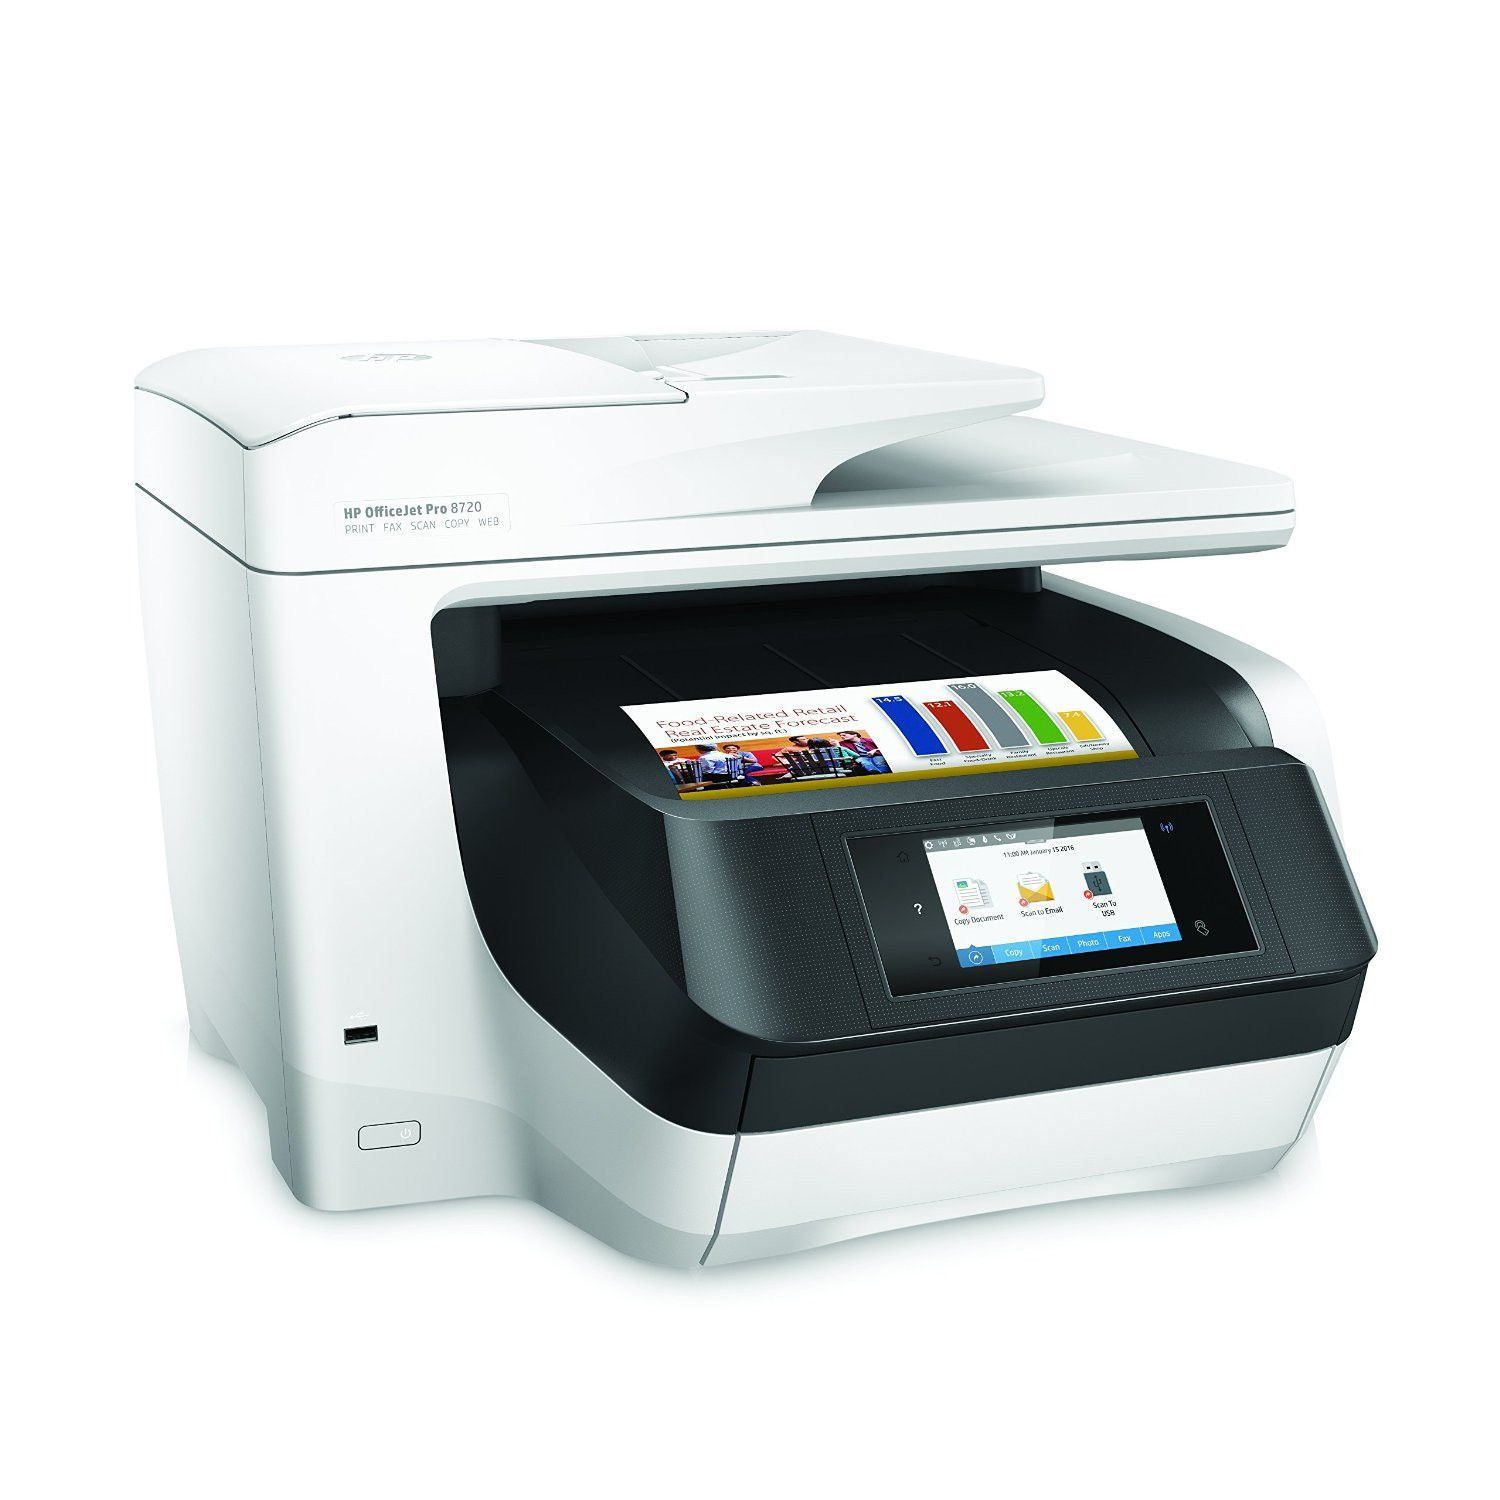 Hp Printer All In One Price In India